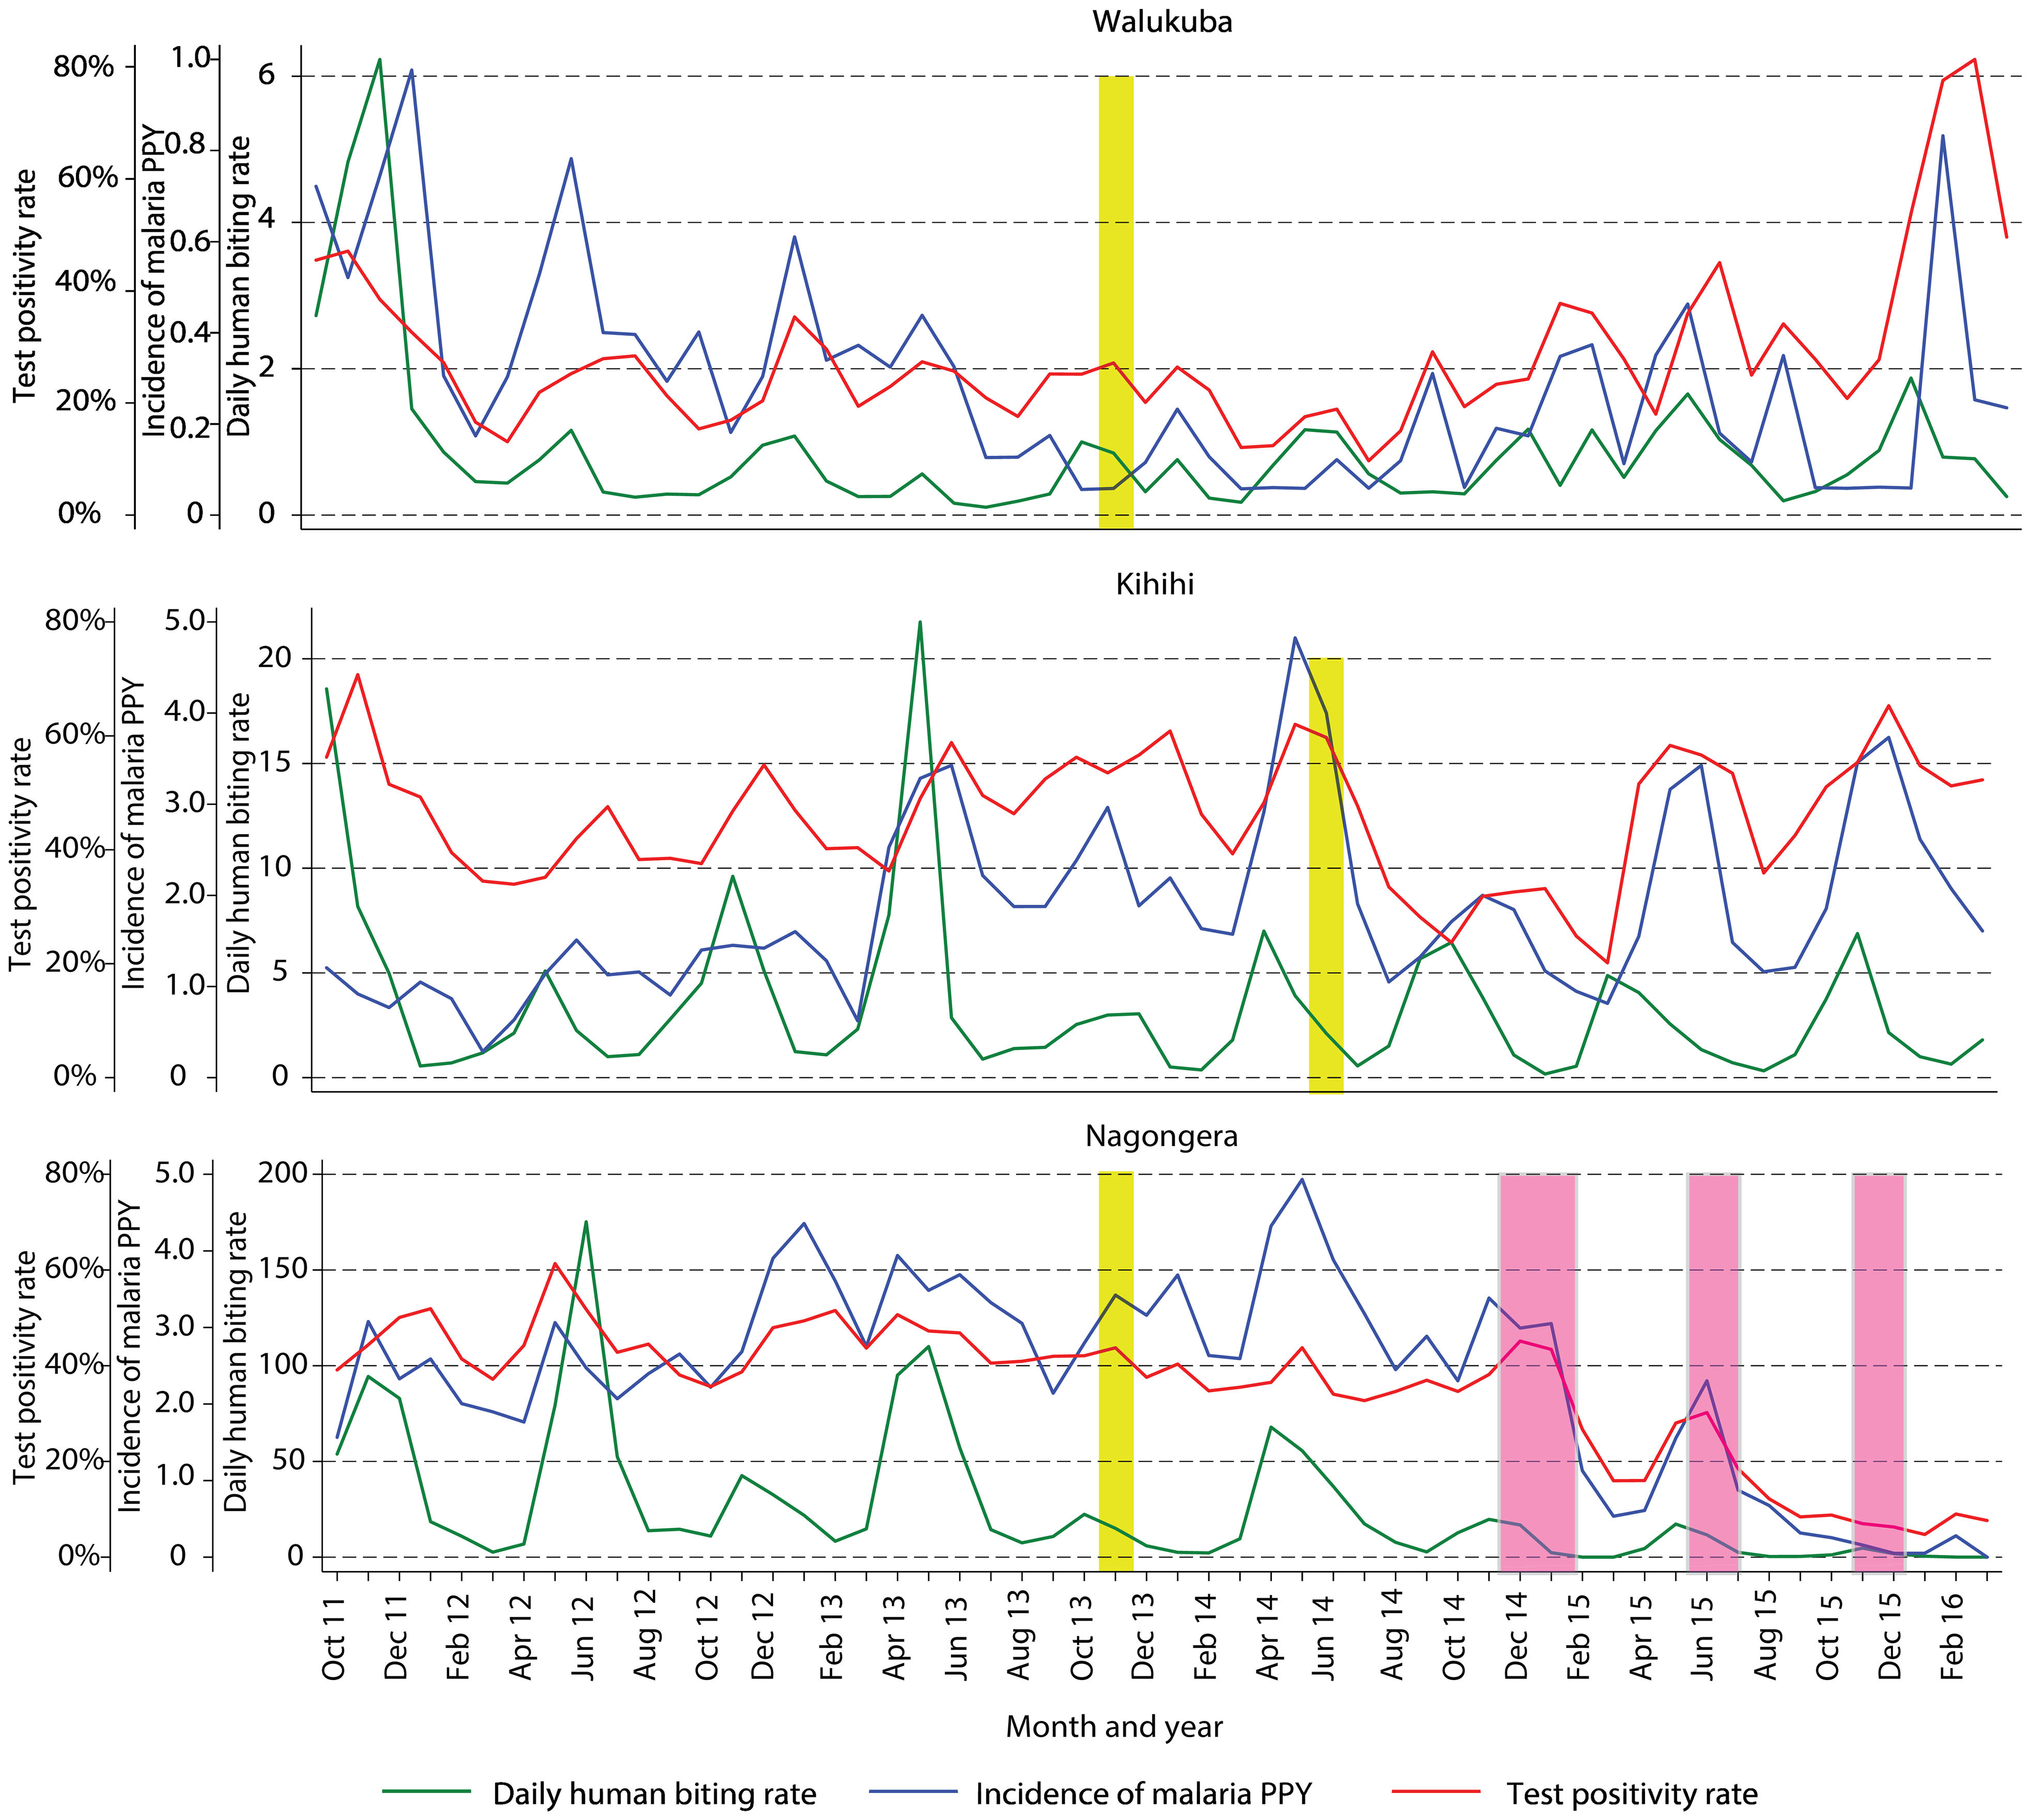 Temporal trends in monthly estimates of malaria test positivity rate from health-facility-based surveillance, incidence of malaria from cohort studies, and daily human biting rate from entomology surveys.